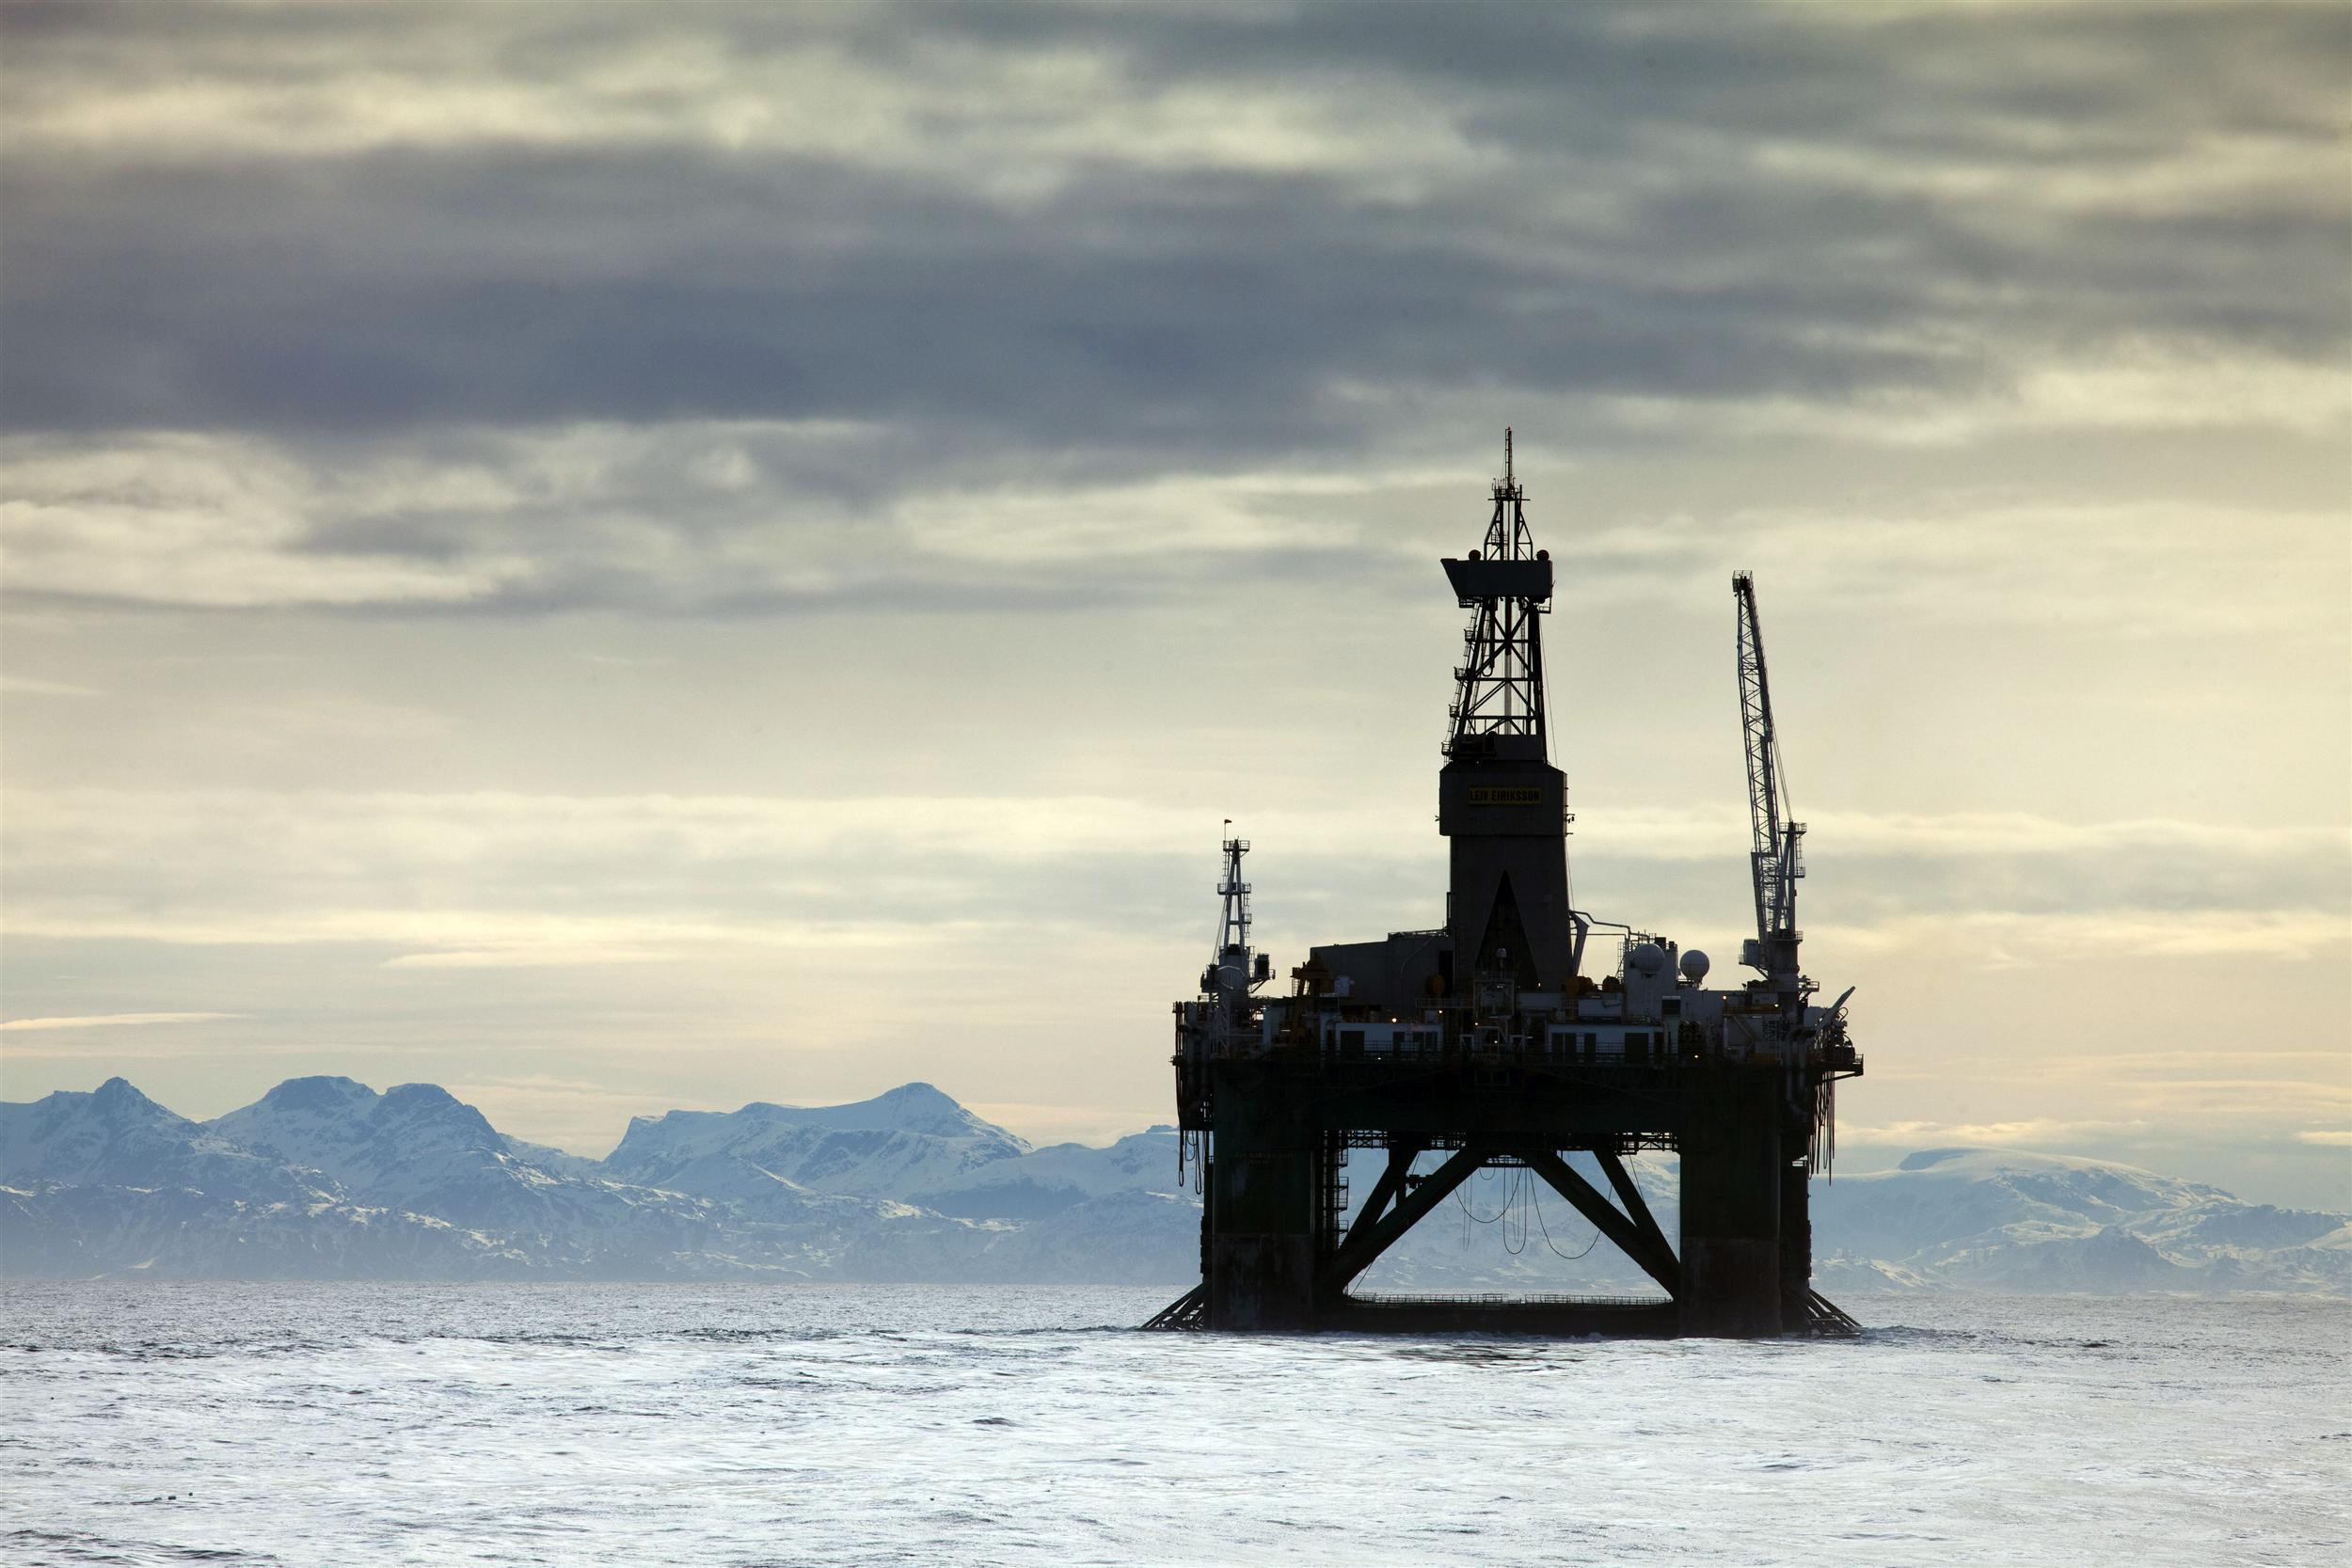 US approves oil drilling in Alaska waters, prompting fears for marine life